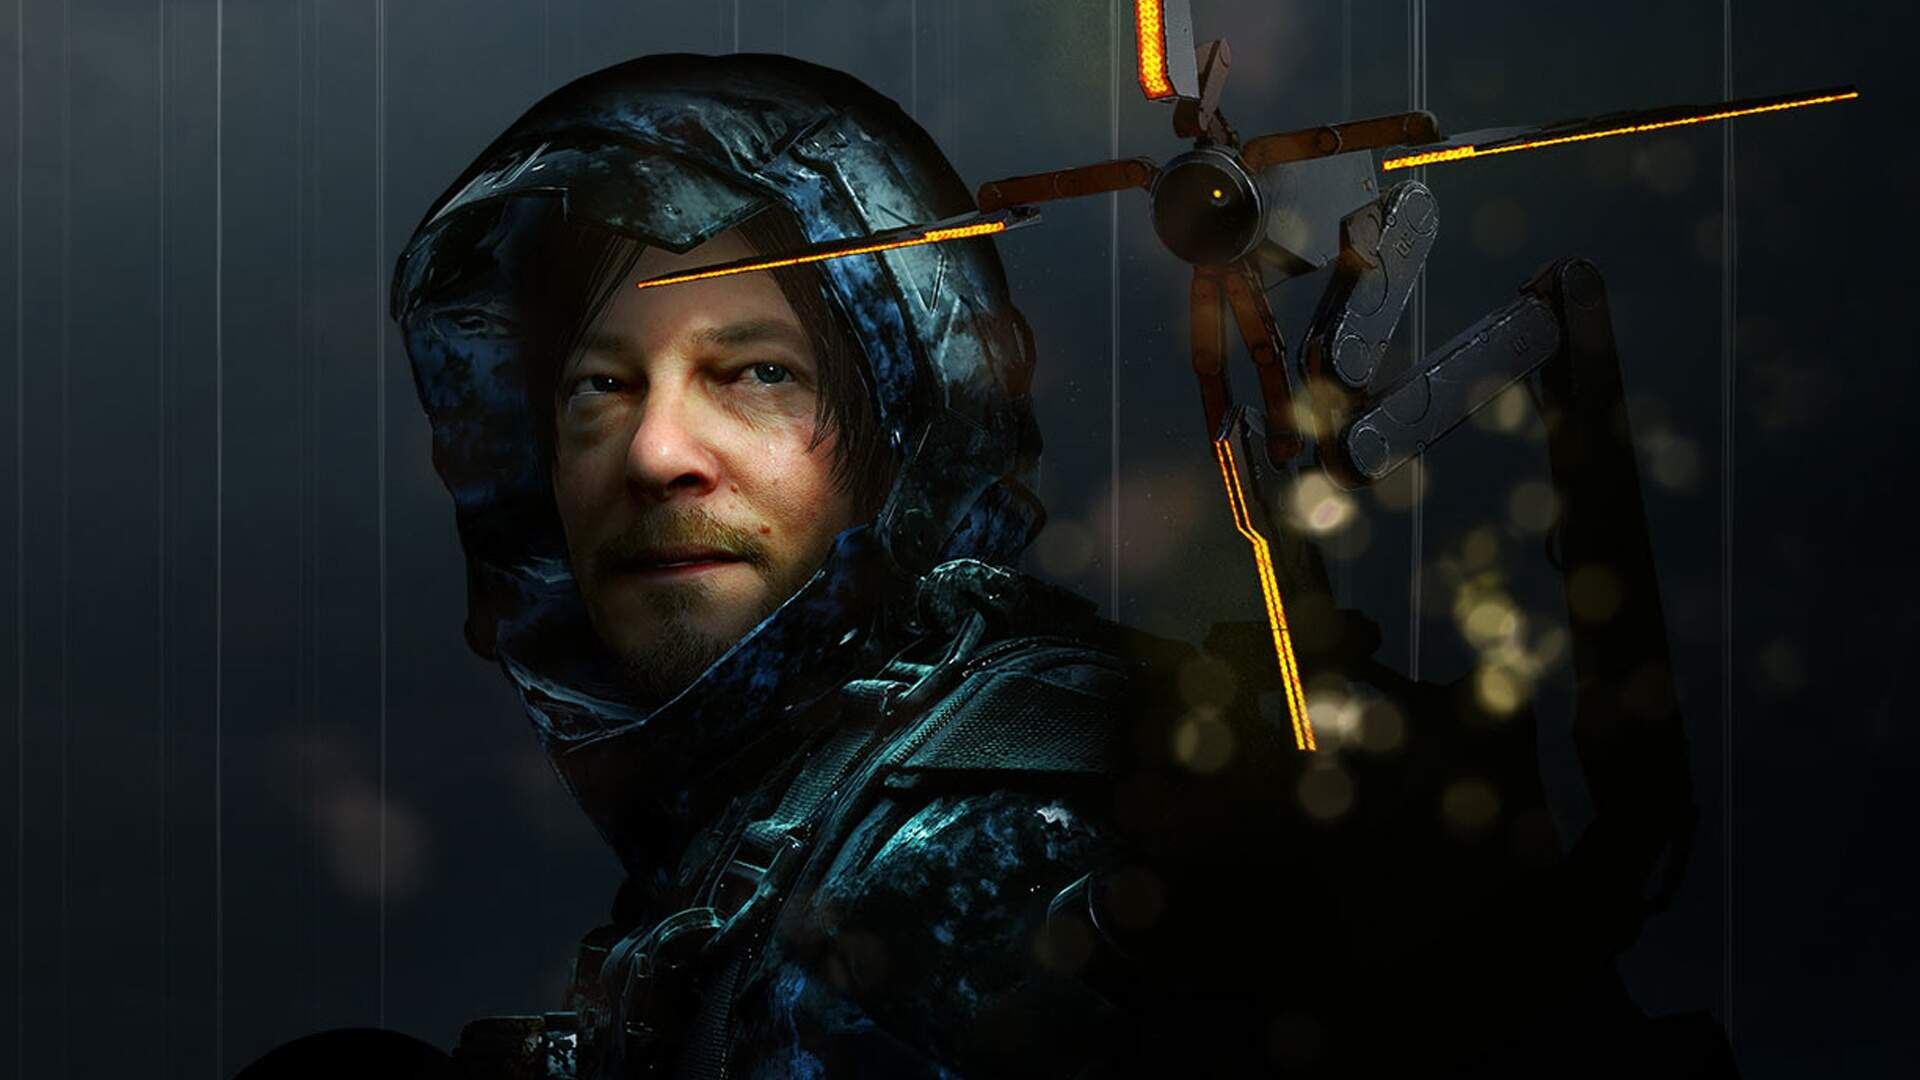 Tribeca Film Festival Enlists Hideo Kojima and Other Industry Figures for New Video Game Award